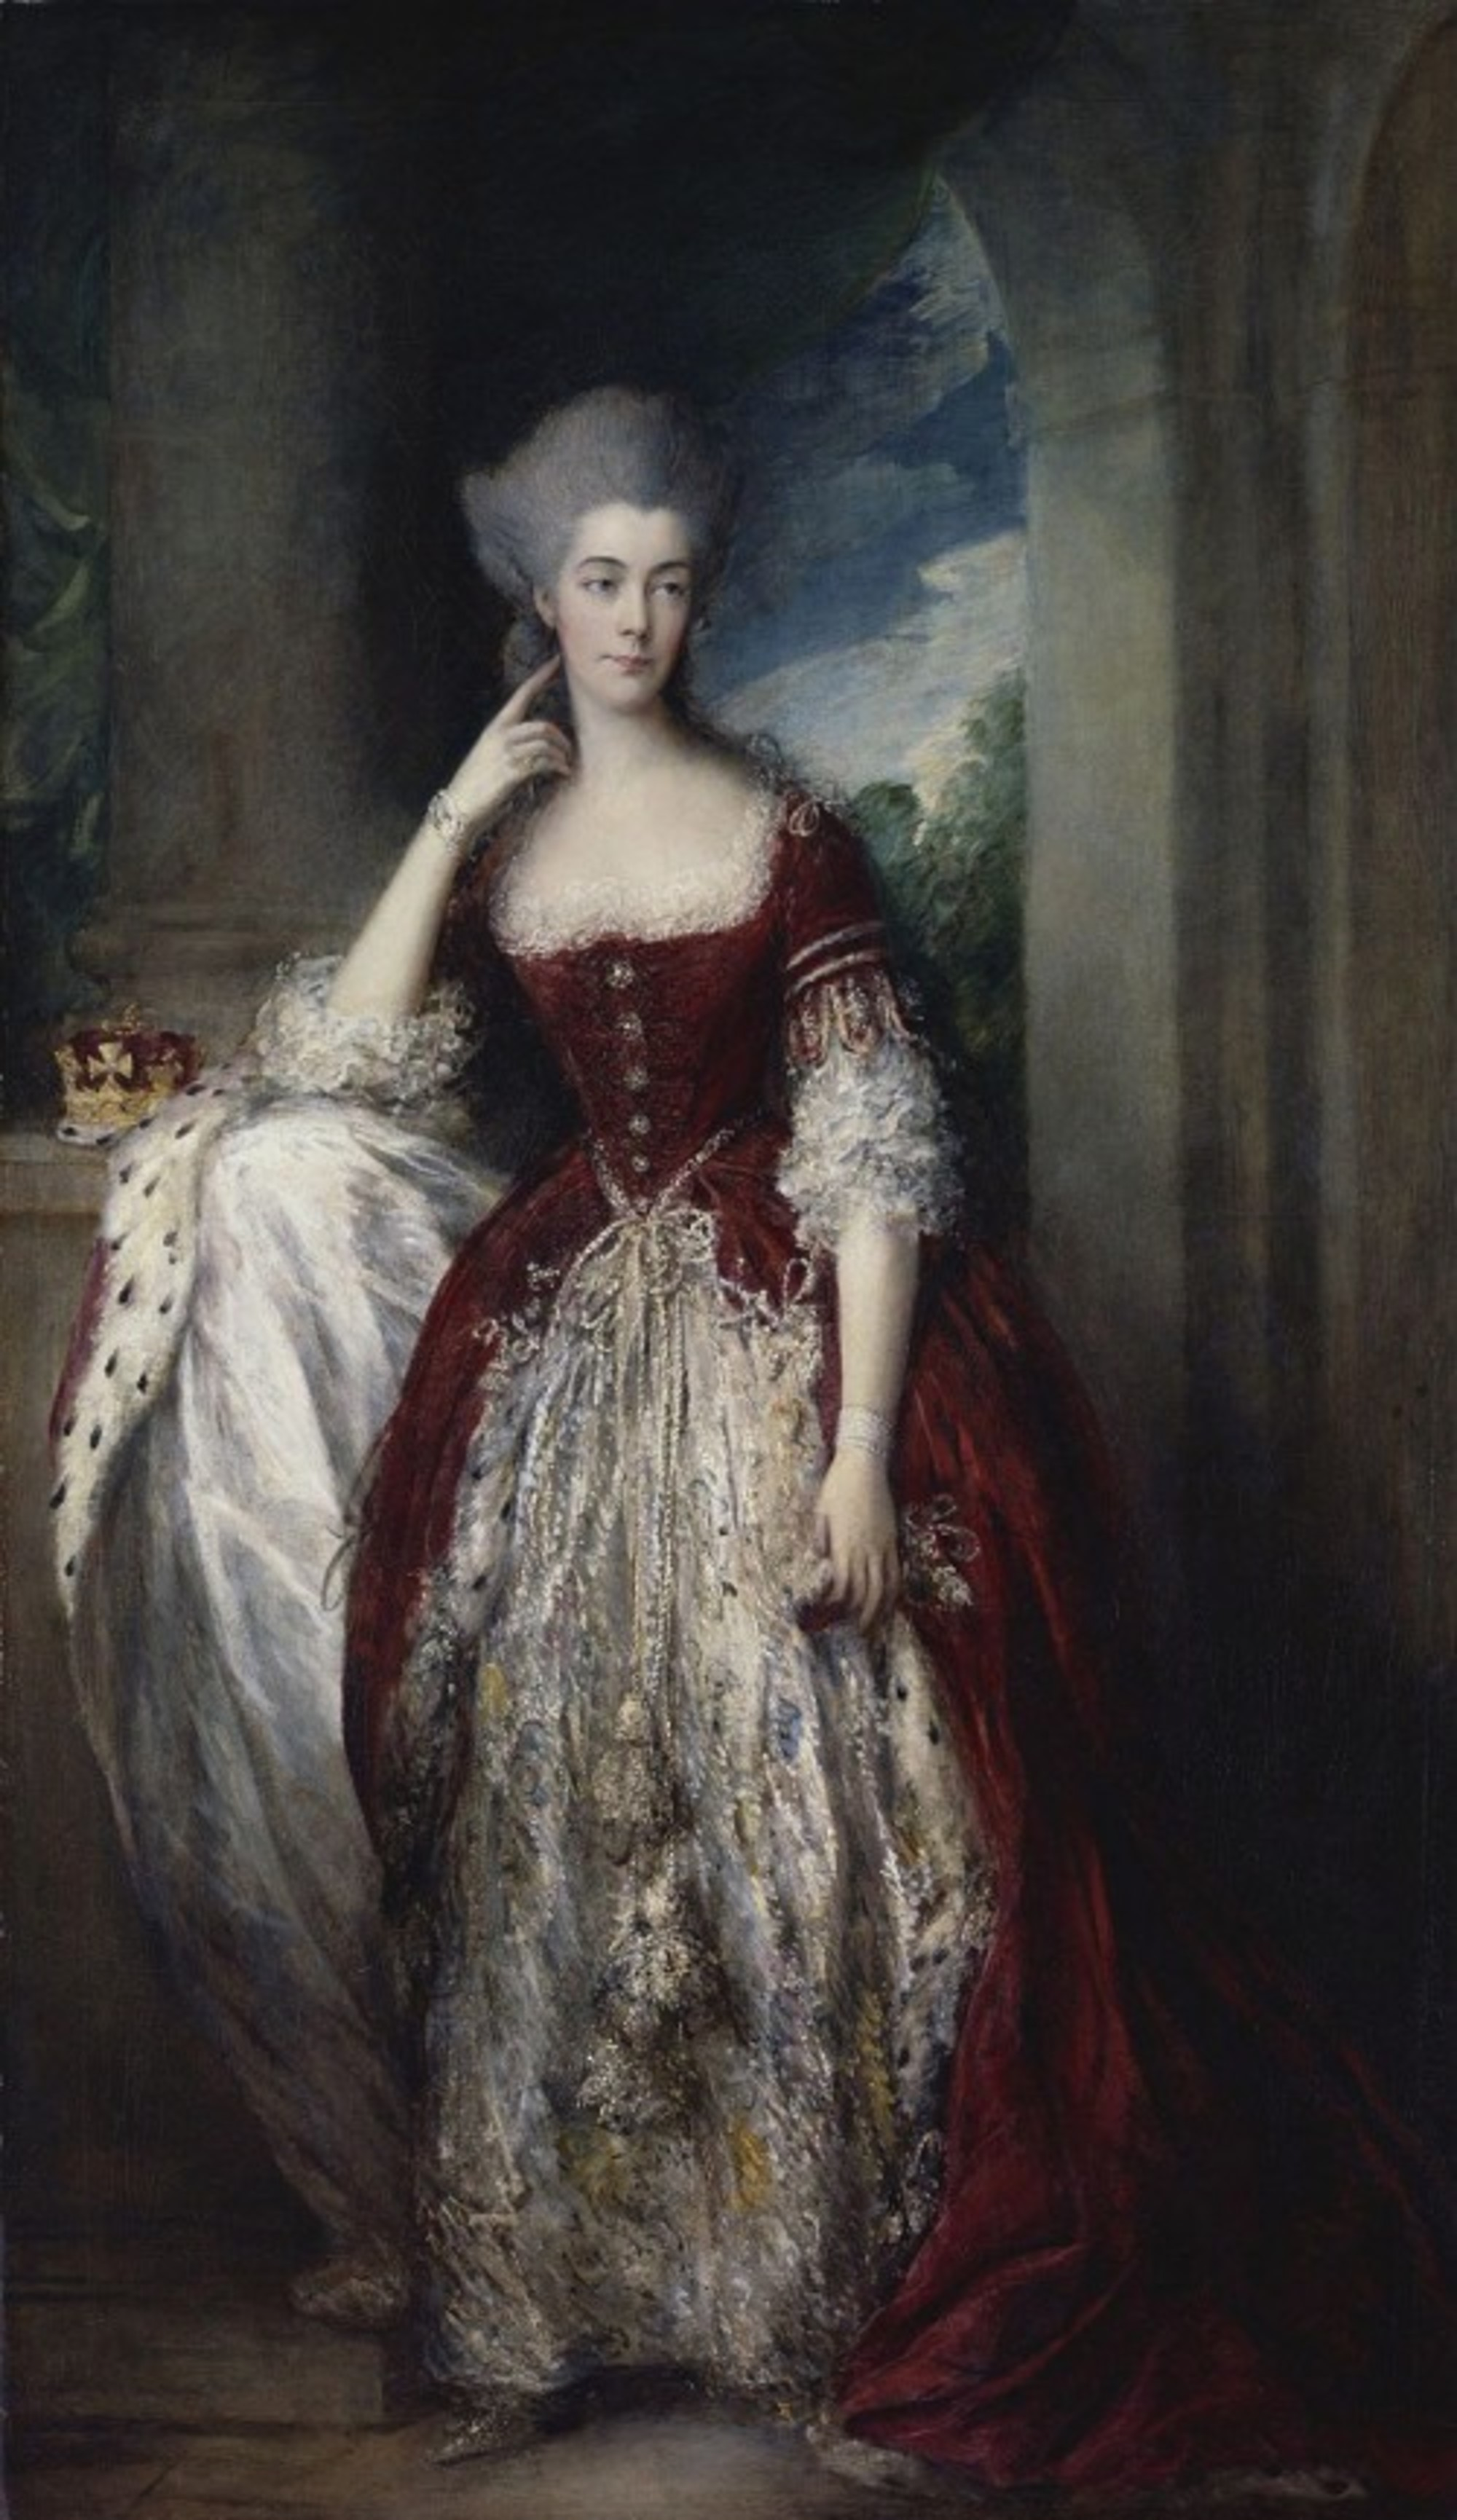 Anne-Duchess-of-Cumberland---Gainsborough-1773-77.jpg